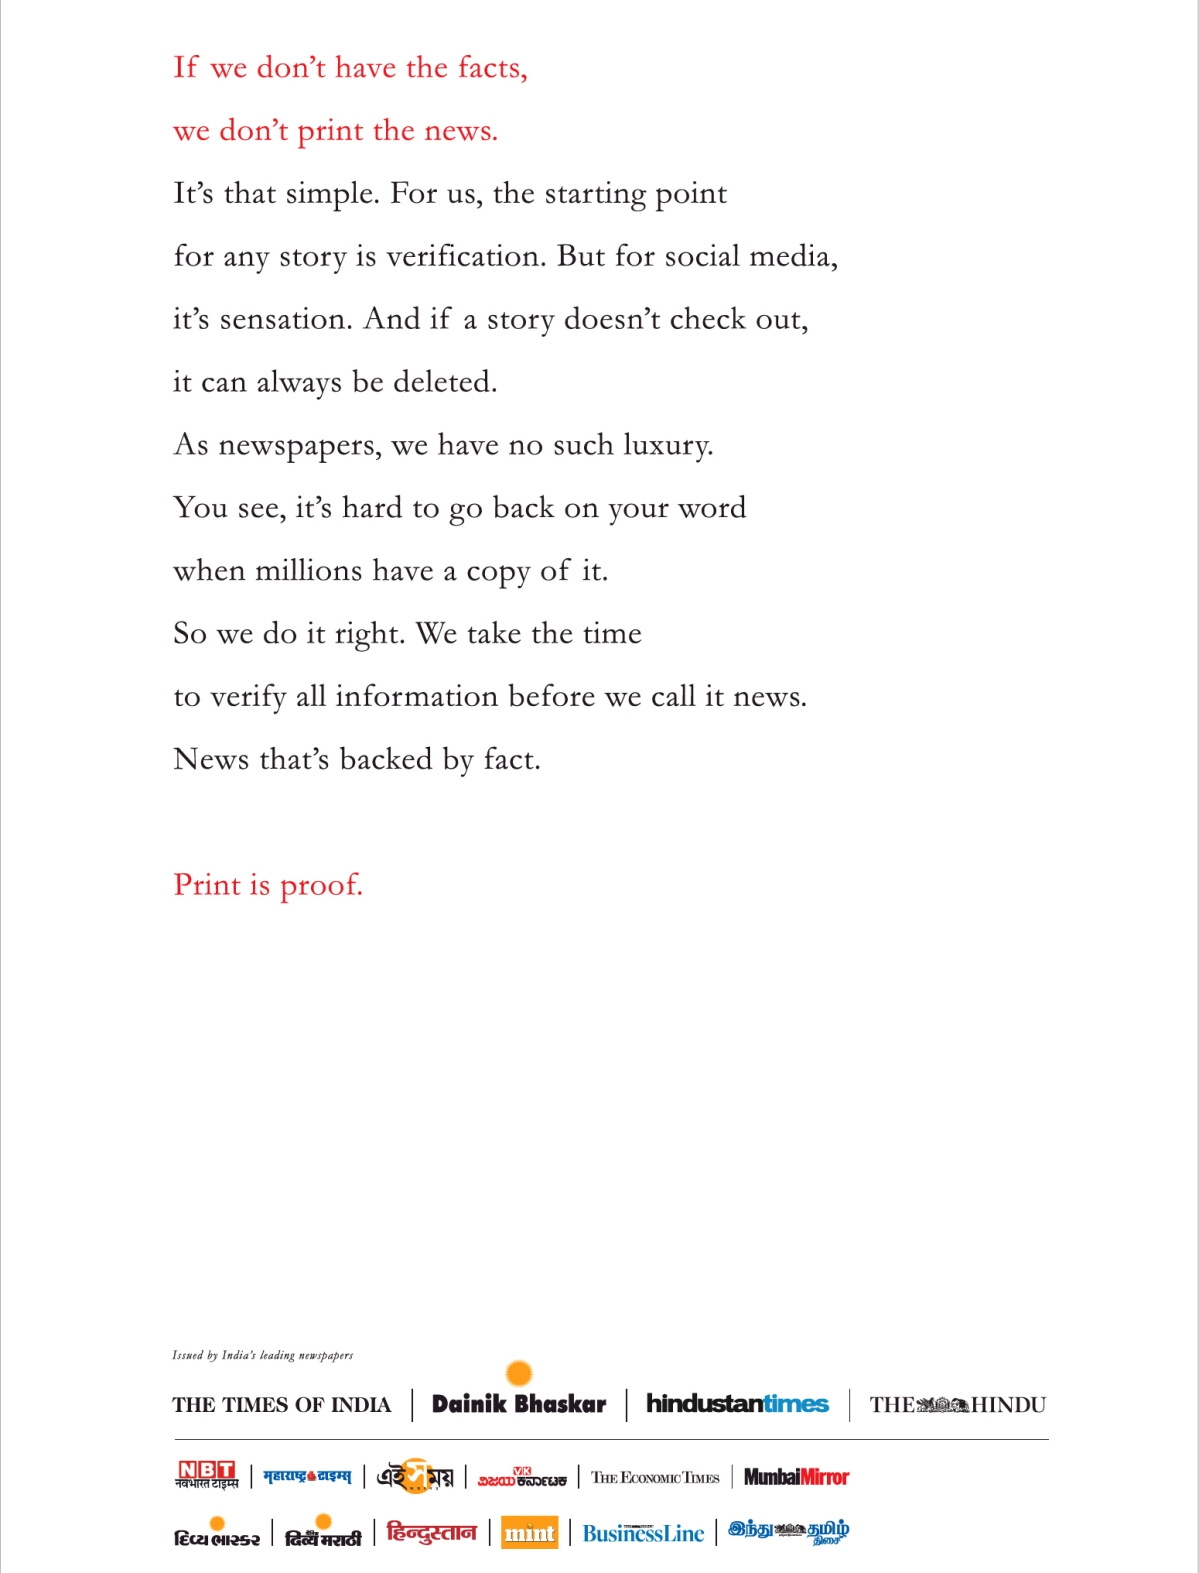 This Lifebuoy print ad urges customers to use competitors too